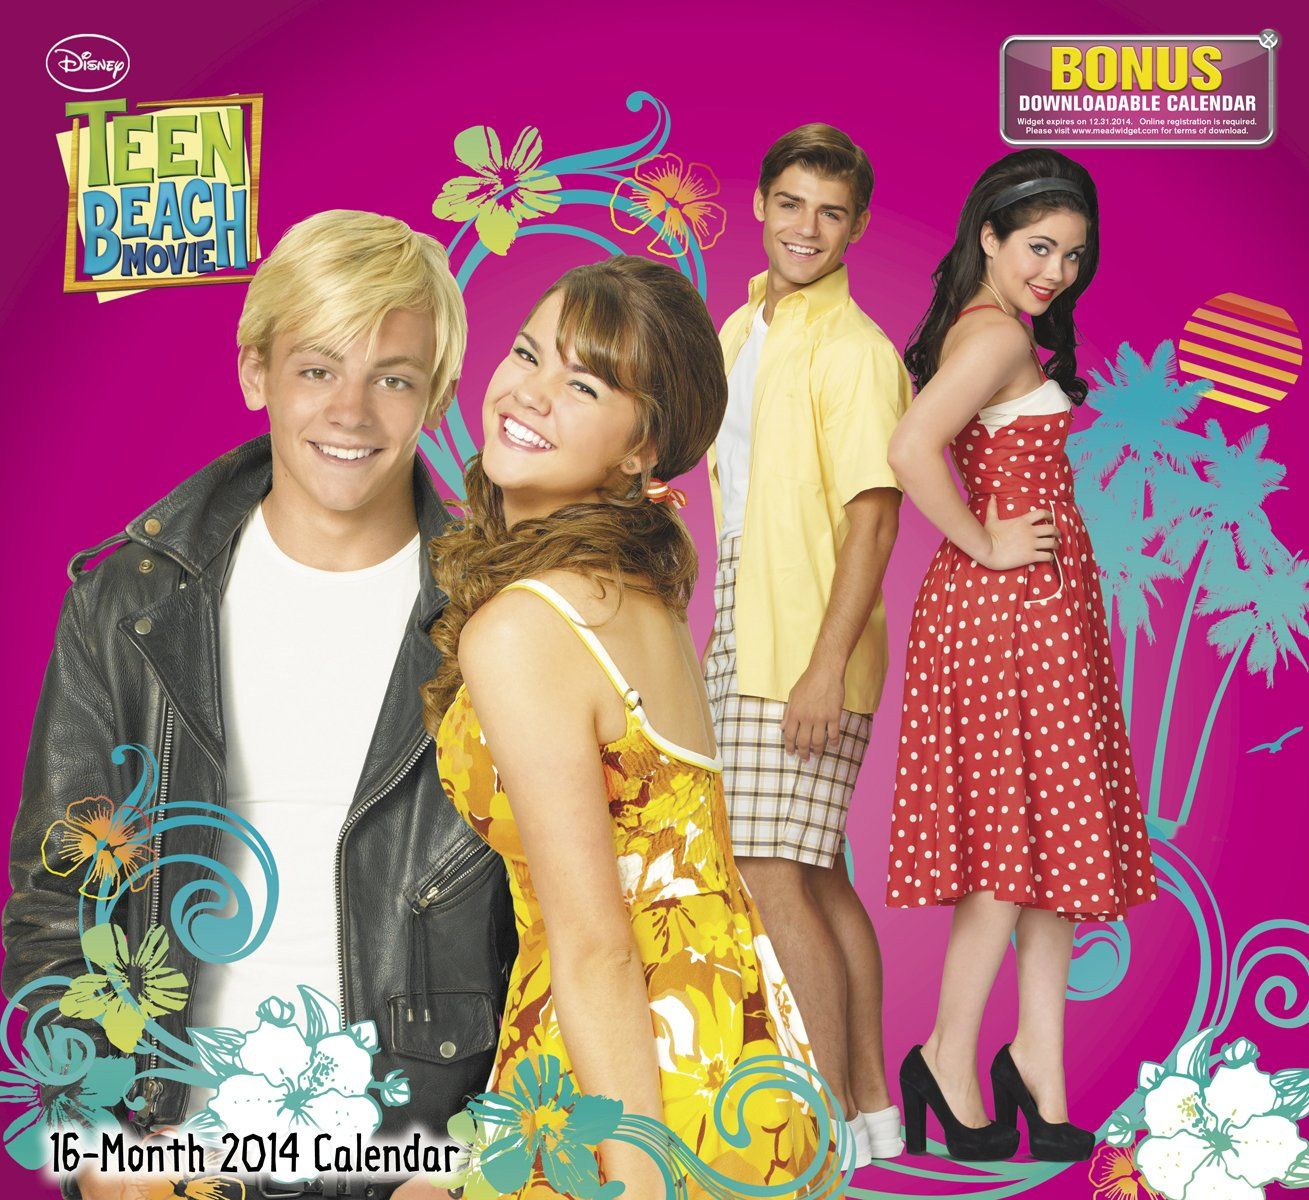 2014 Teen Beach Movie Wall Calendar: Disney: 9781423822257: Amazon ...